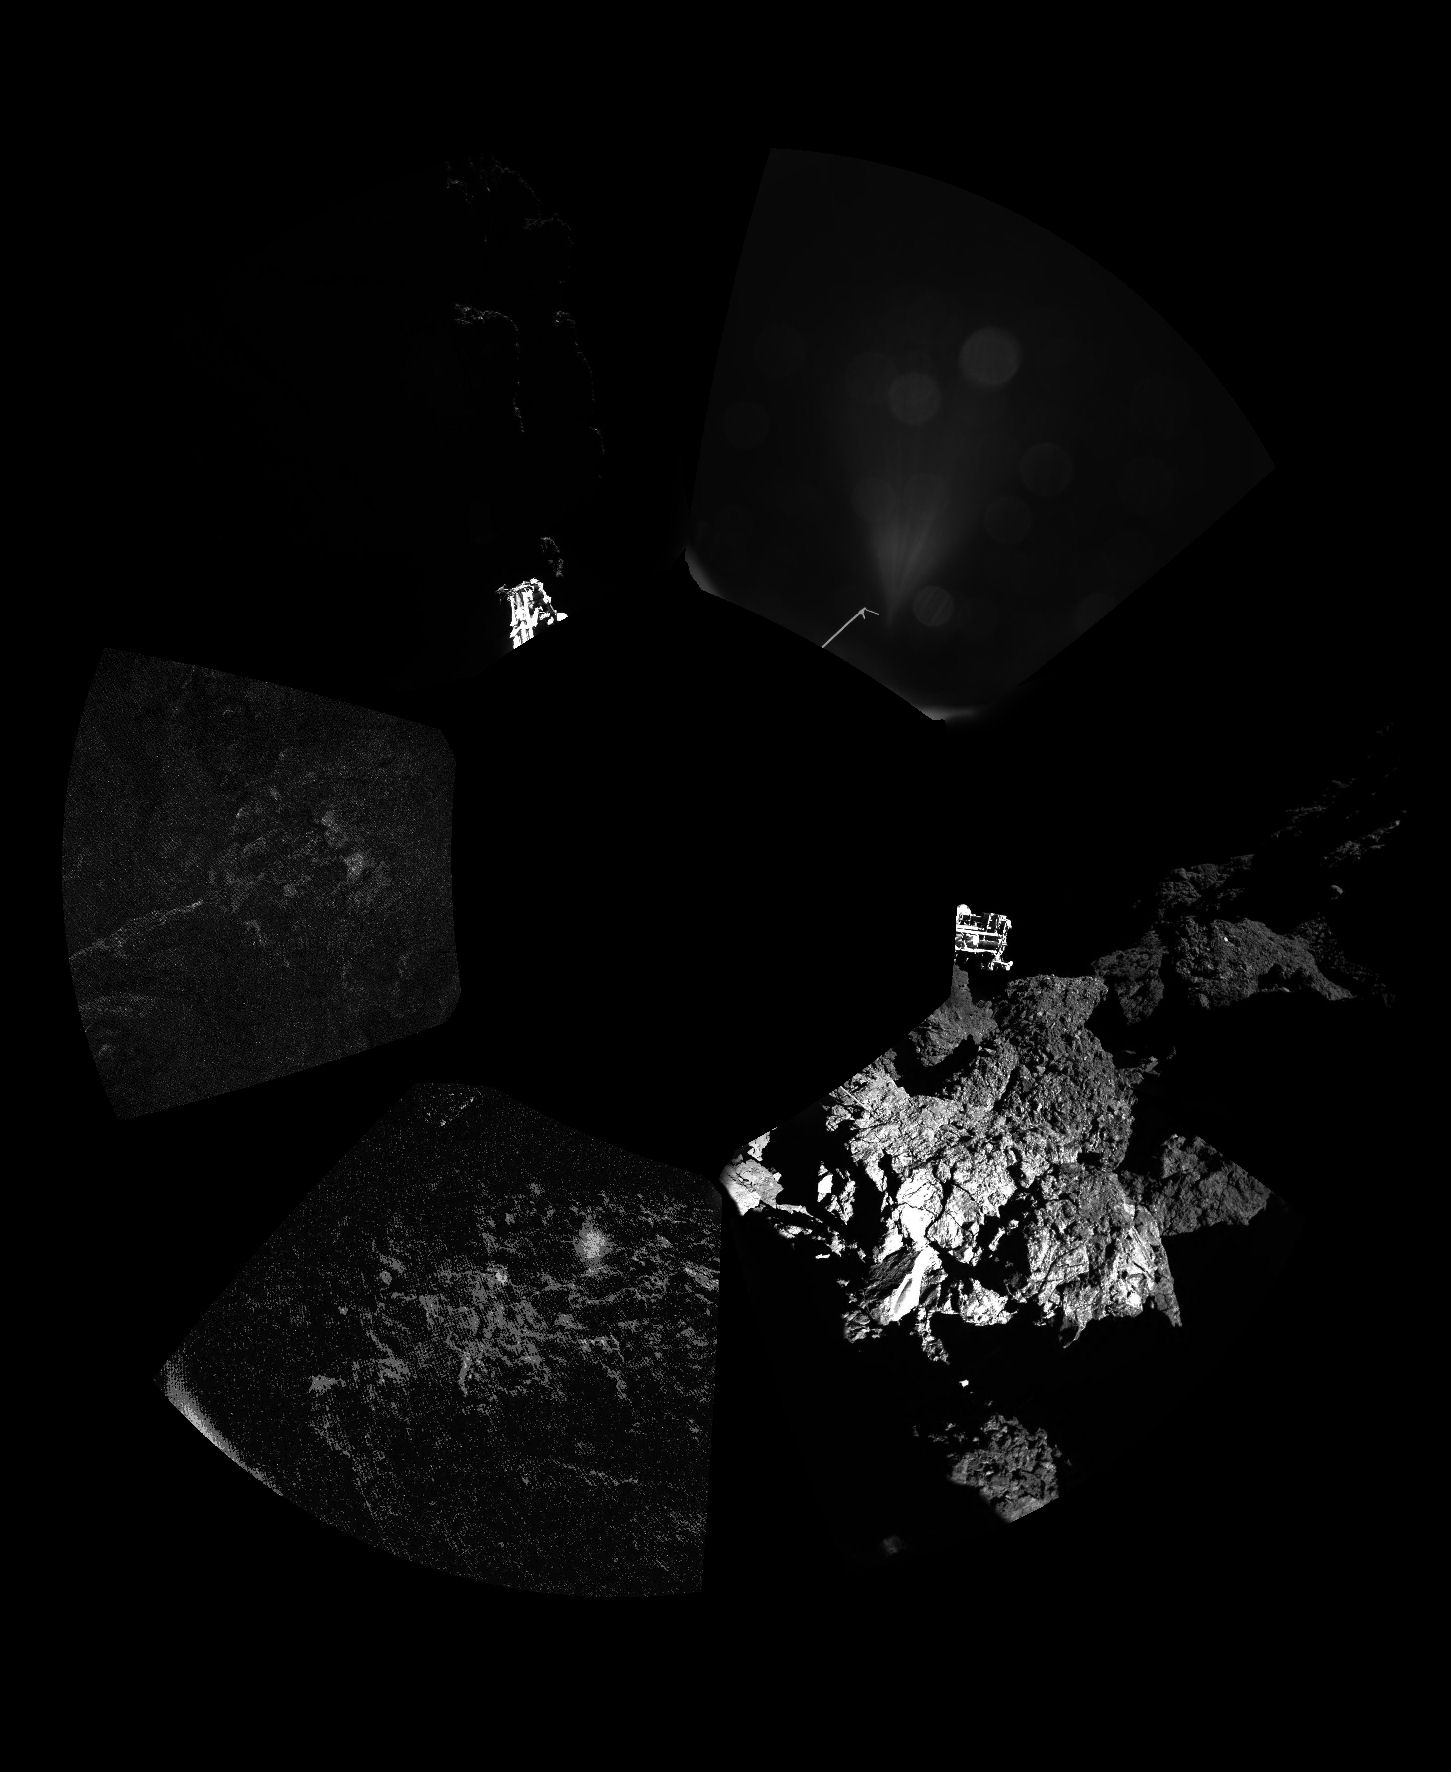 Comet Panorama from Philae Lander